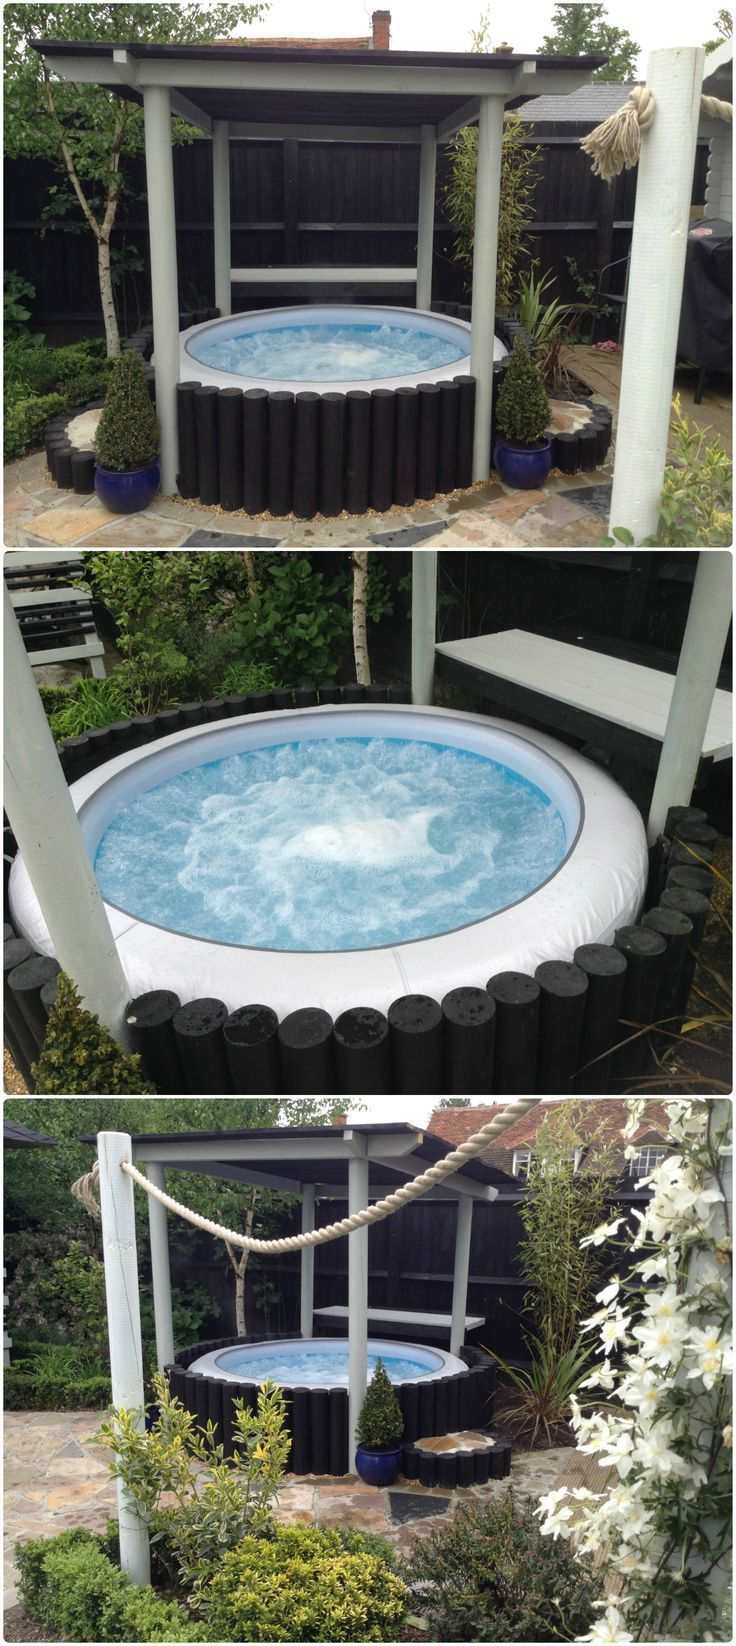 Jacuzzi Pool Ideas 25 Indoor Hot Tub Landscaping Ideas Pictures And Ideas On Pro